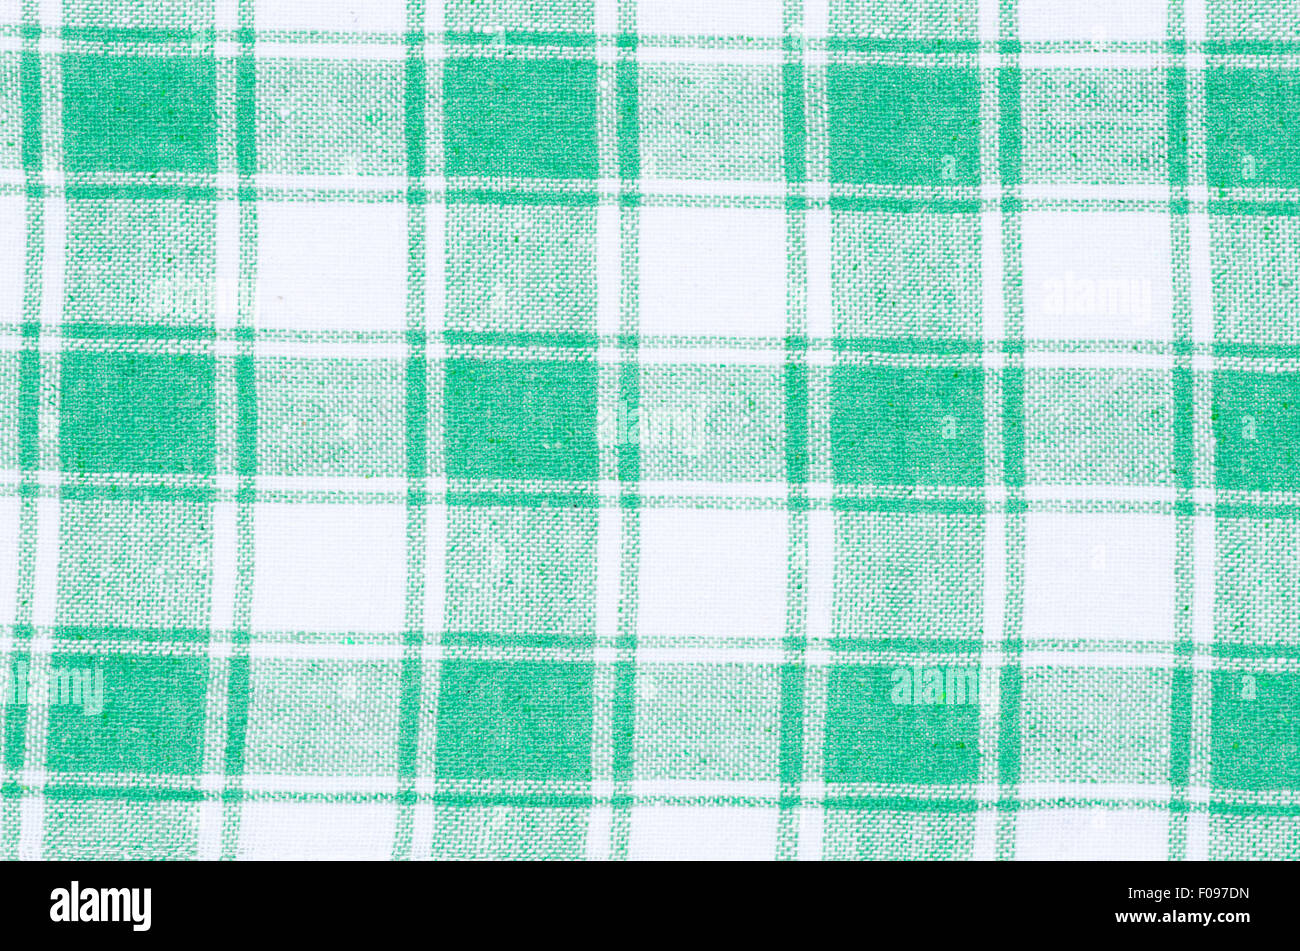 Checkered Green And White Kitchen Towel Background Texture